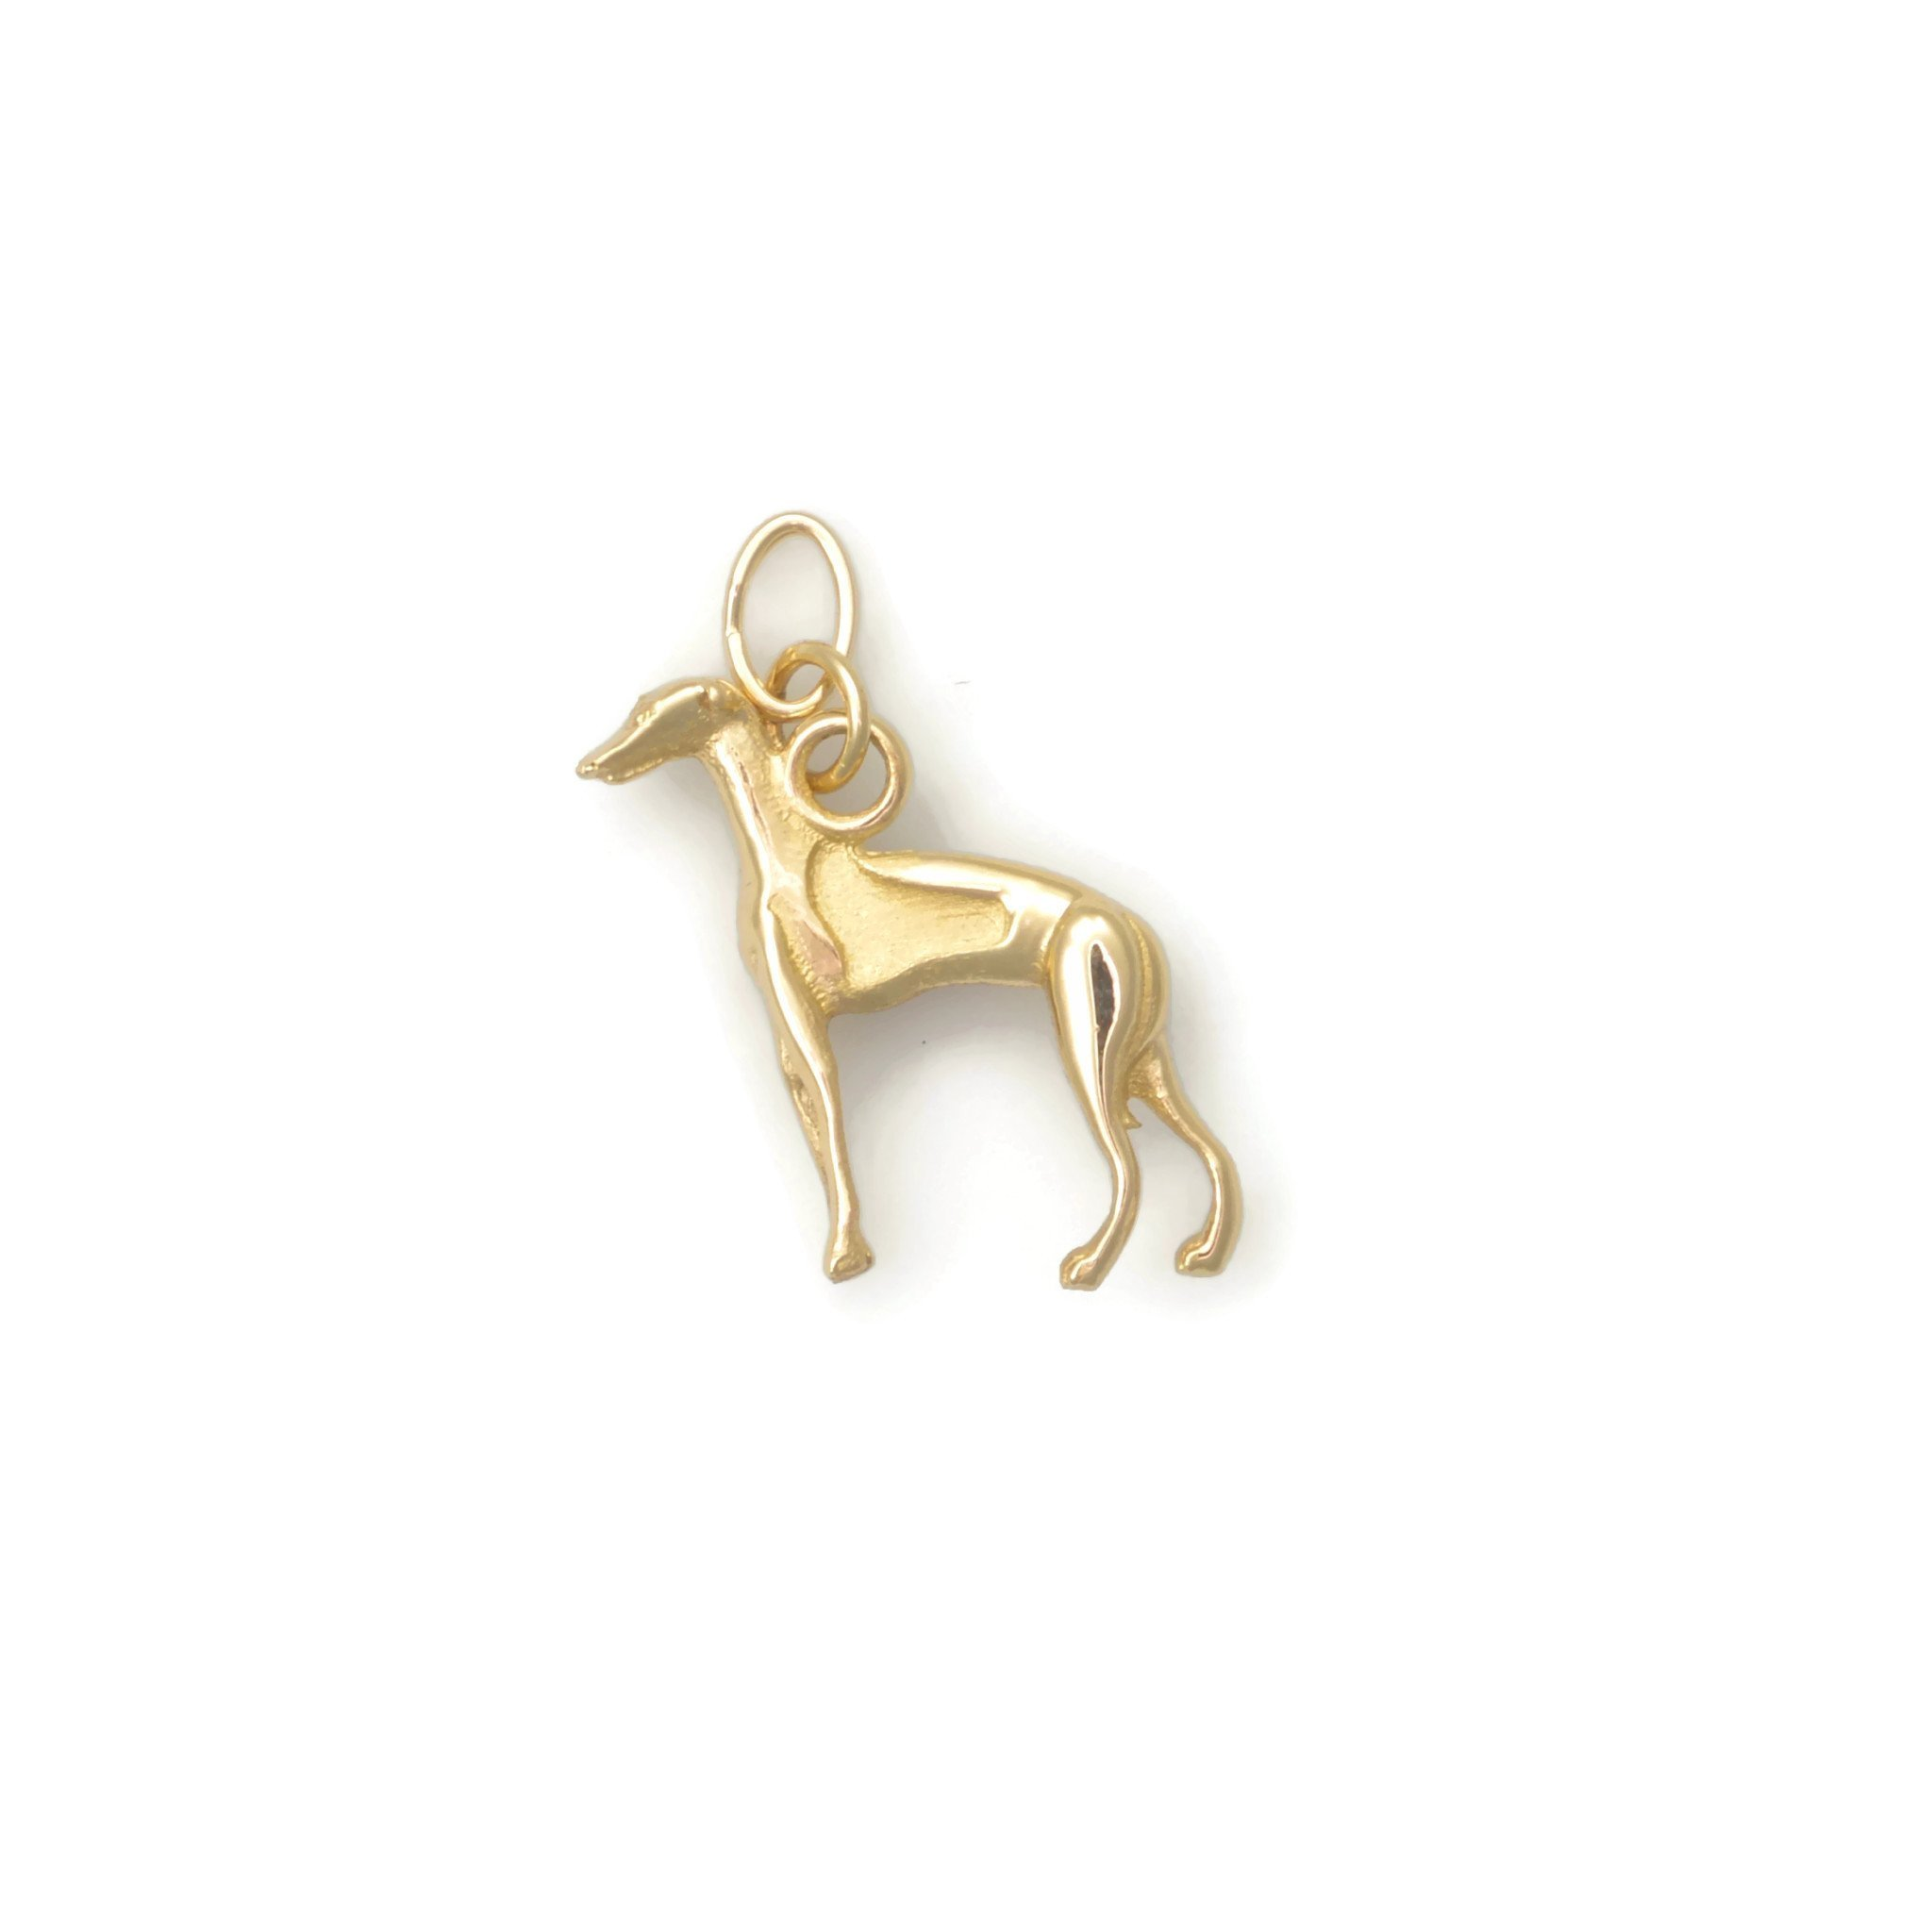 14Kt Italian Greyhound Charm by Donna Pizarro from her Animal Whimsey Collection of 14Kt Gold Italian Greyhound Jewelry & Gold Italian Greyhound Charms by Donna Pizarro Designs